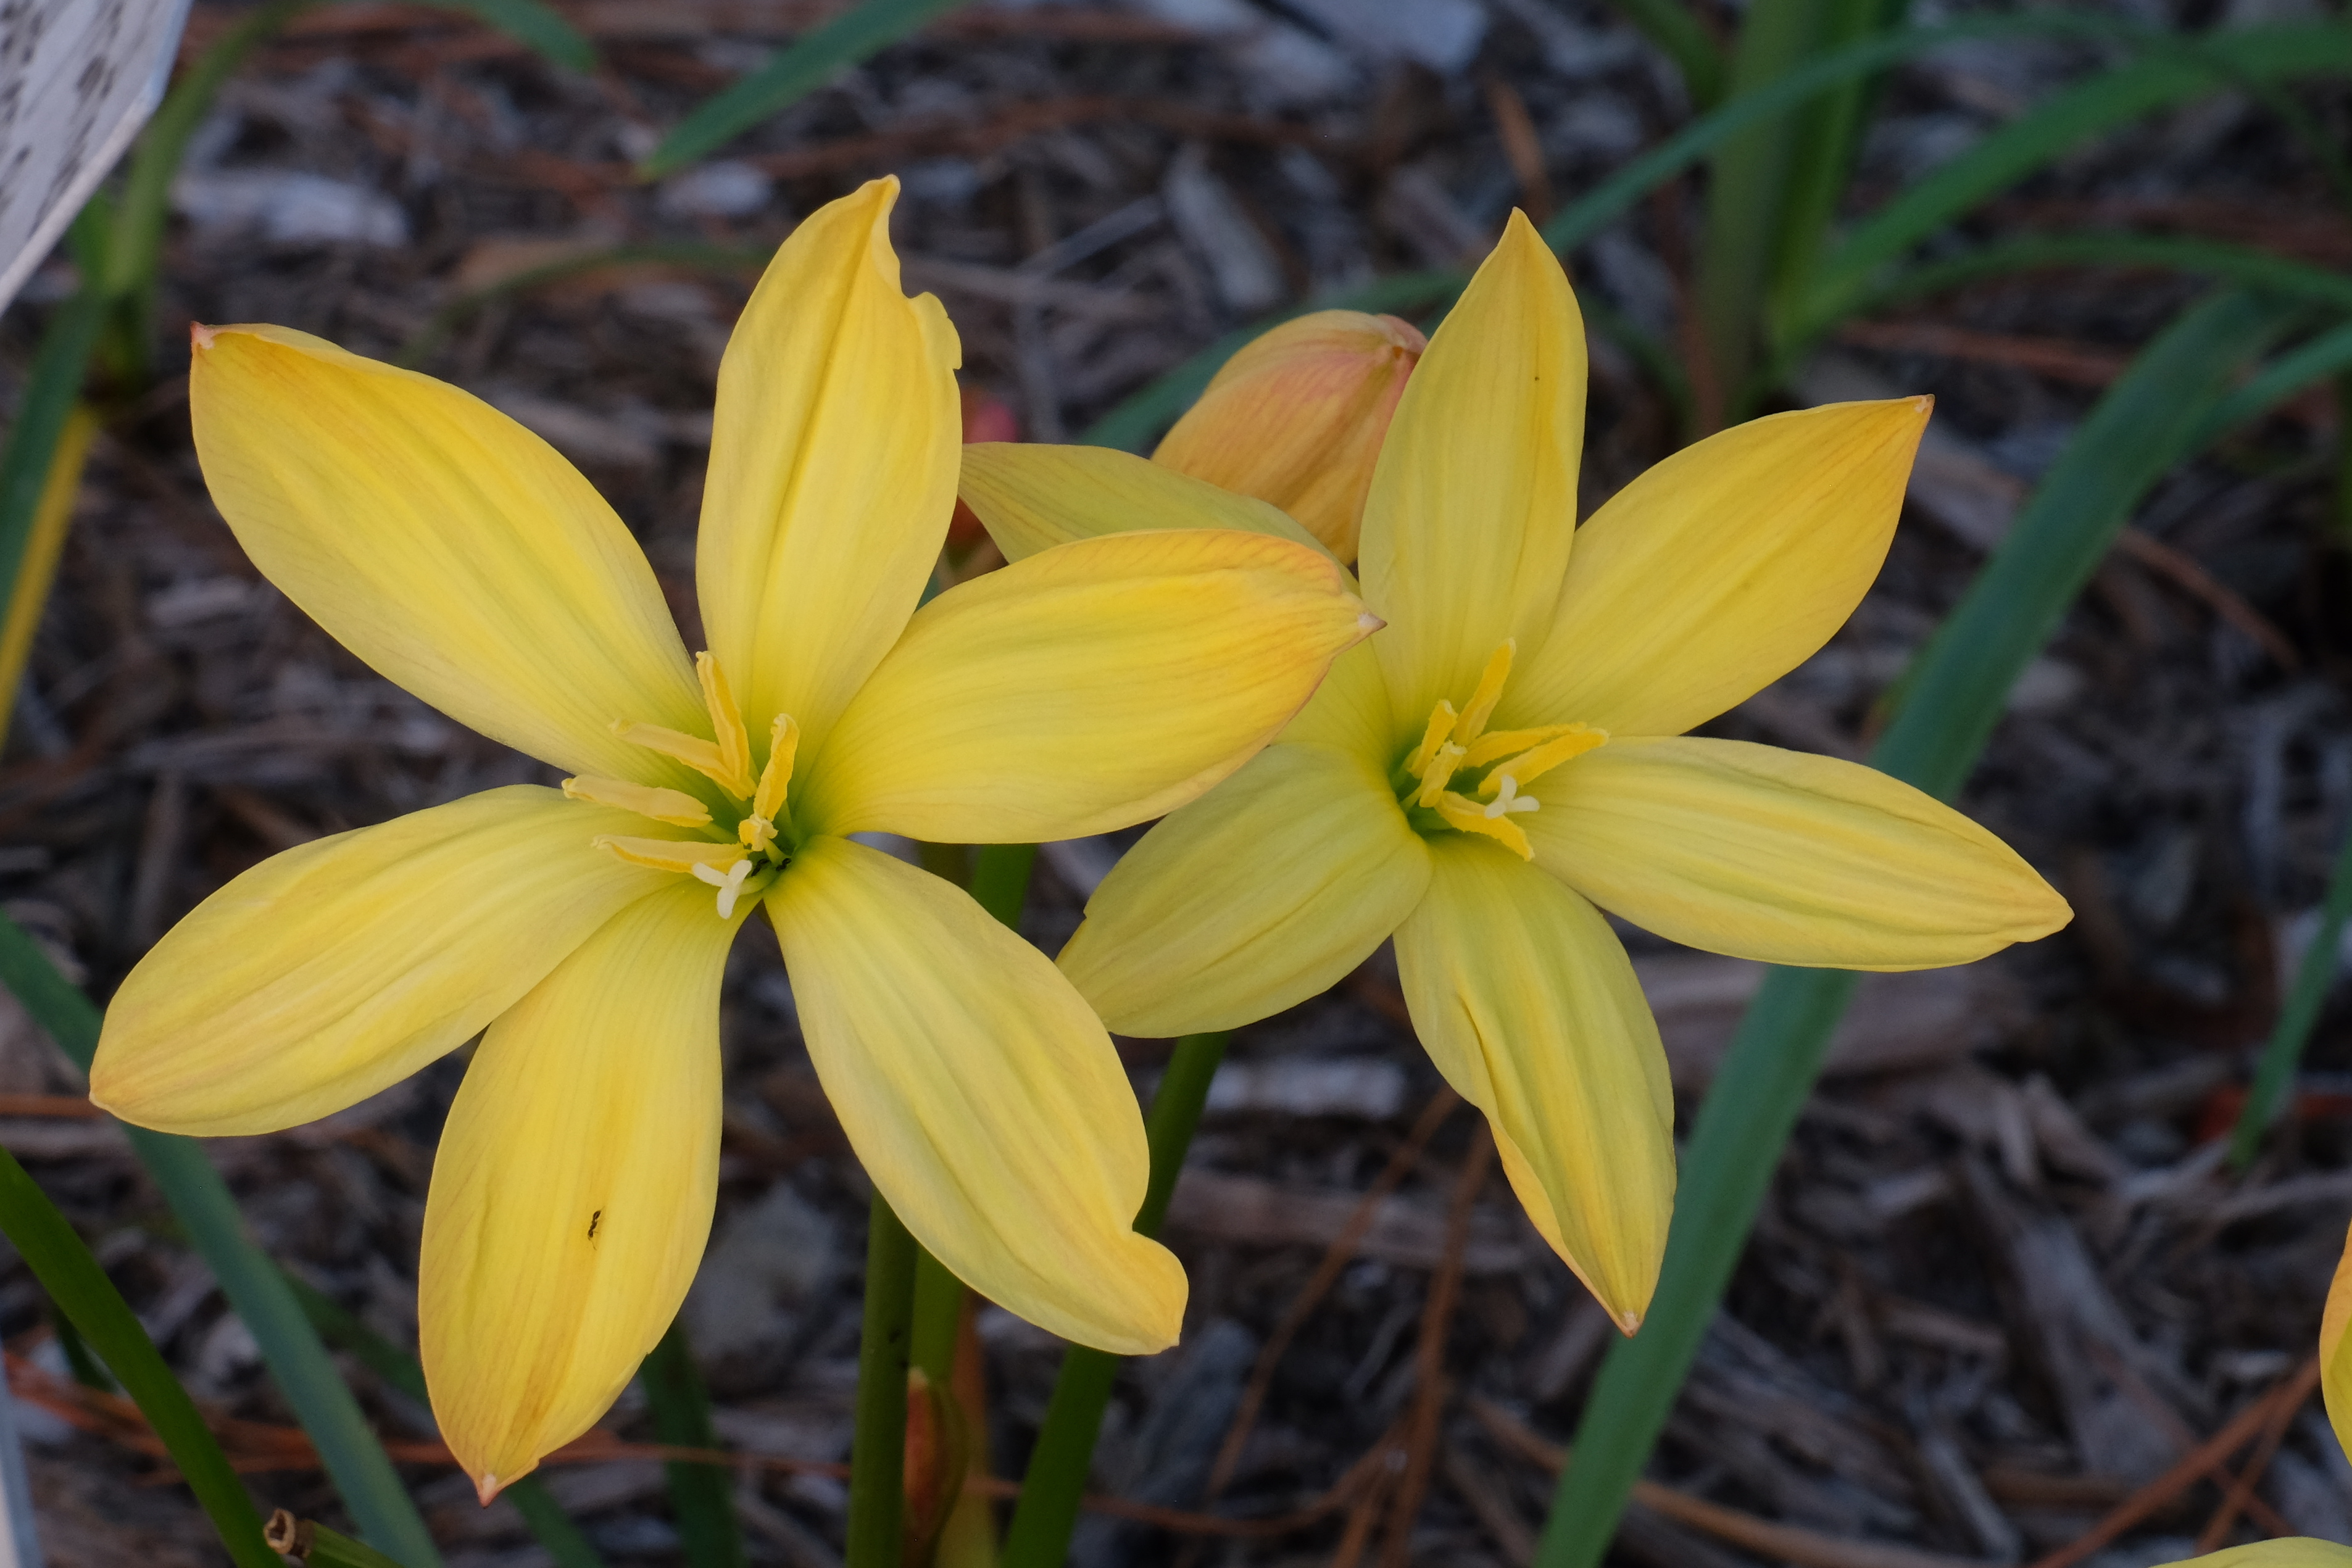 Zephyranthes 'Buttery Billowy Blowout' @ JLBG